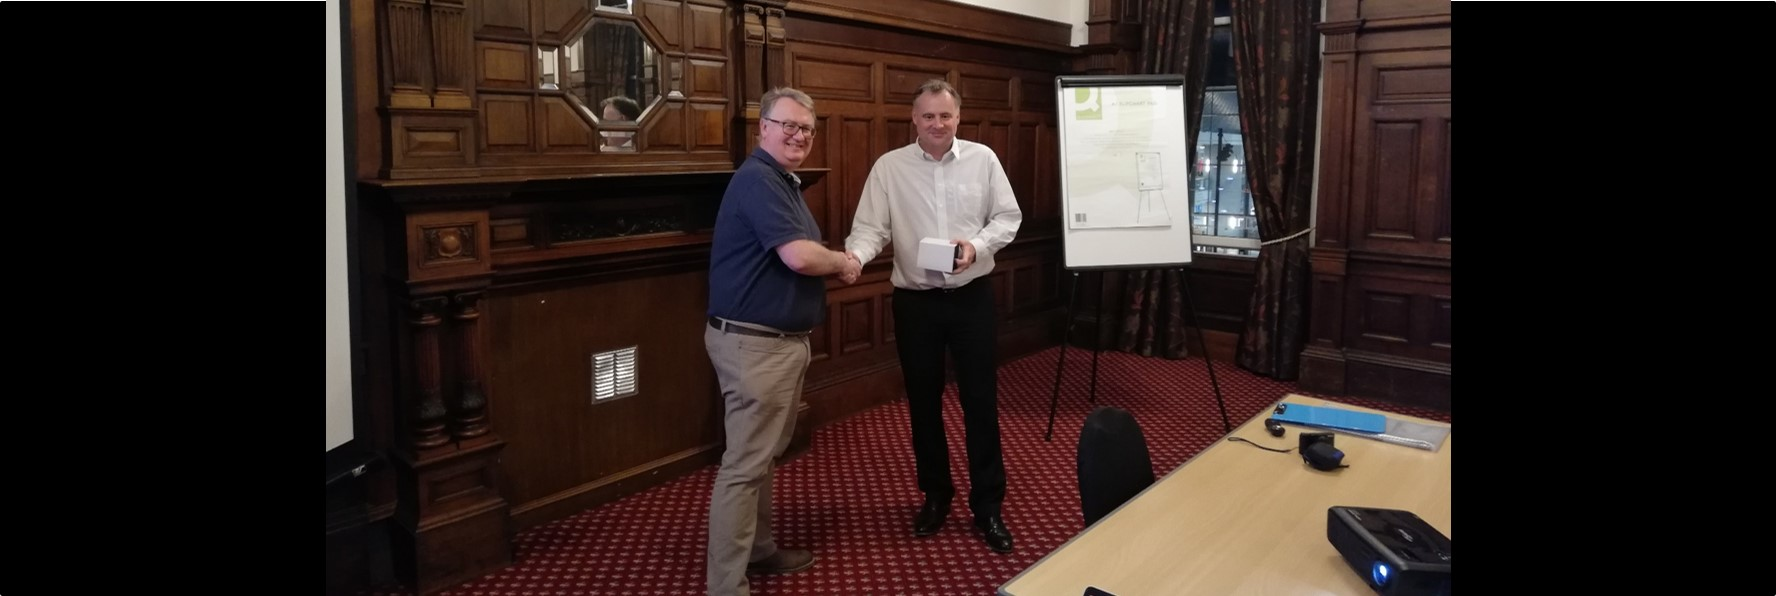 March 2019 monthly AFES meeting (Neil Cardy left, Stephen Morris right)